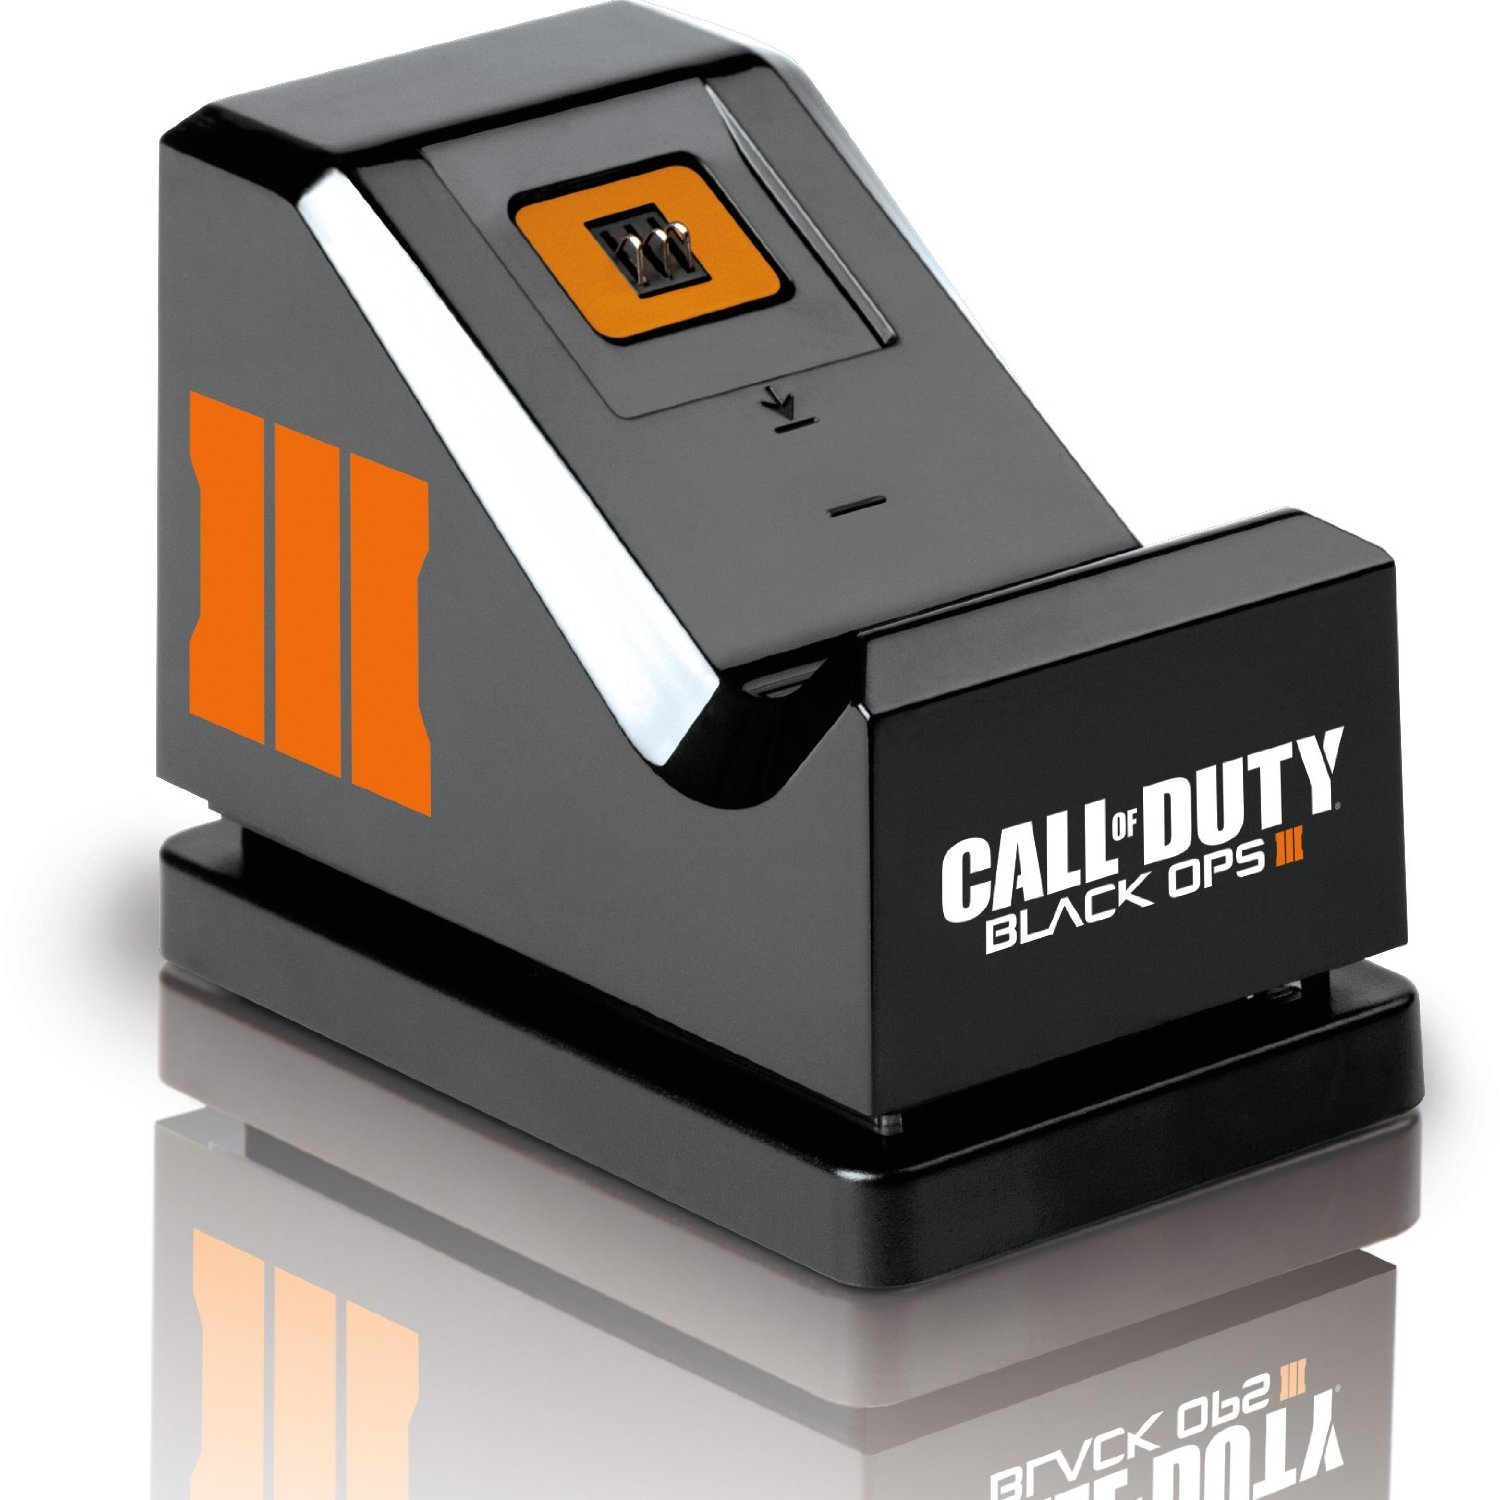 A Look At The Power A Call Of Duty Black Ops 3 Controller